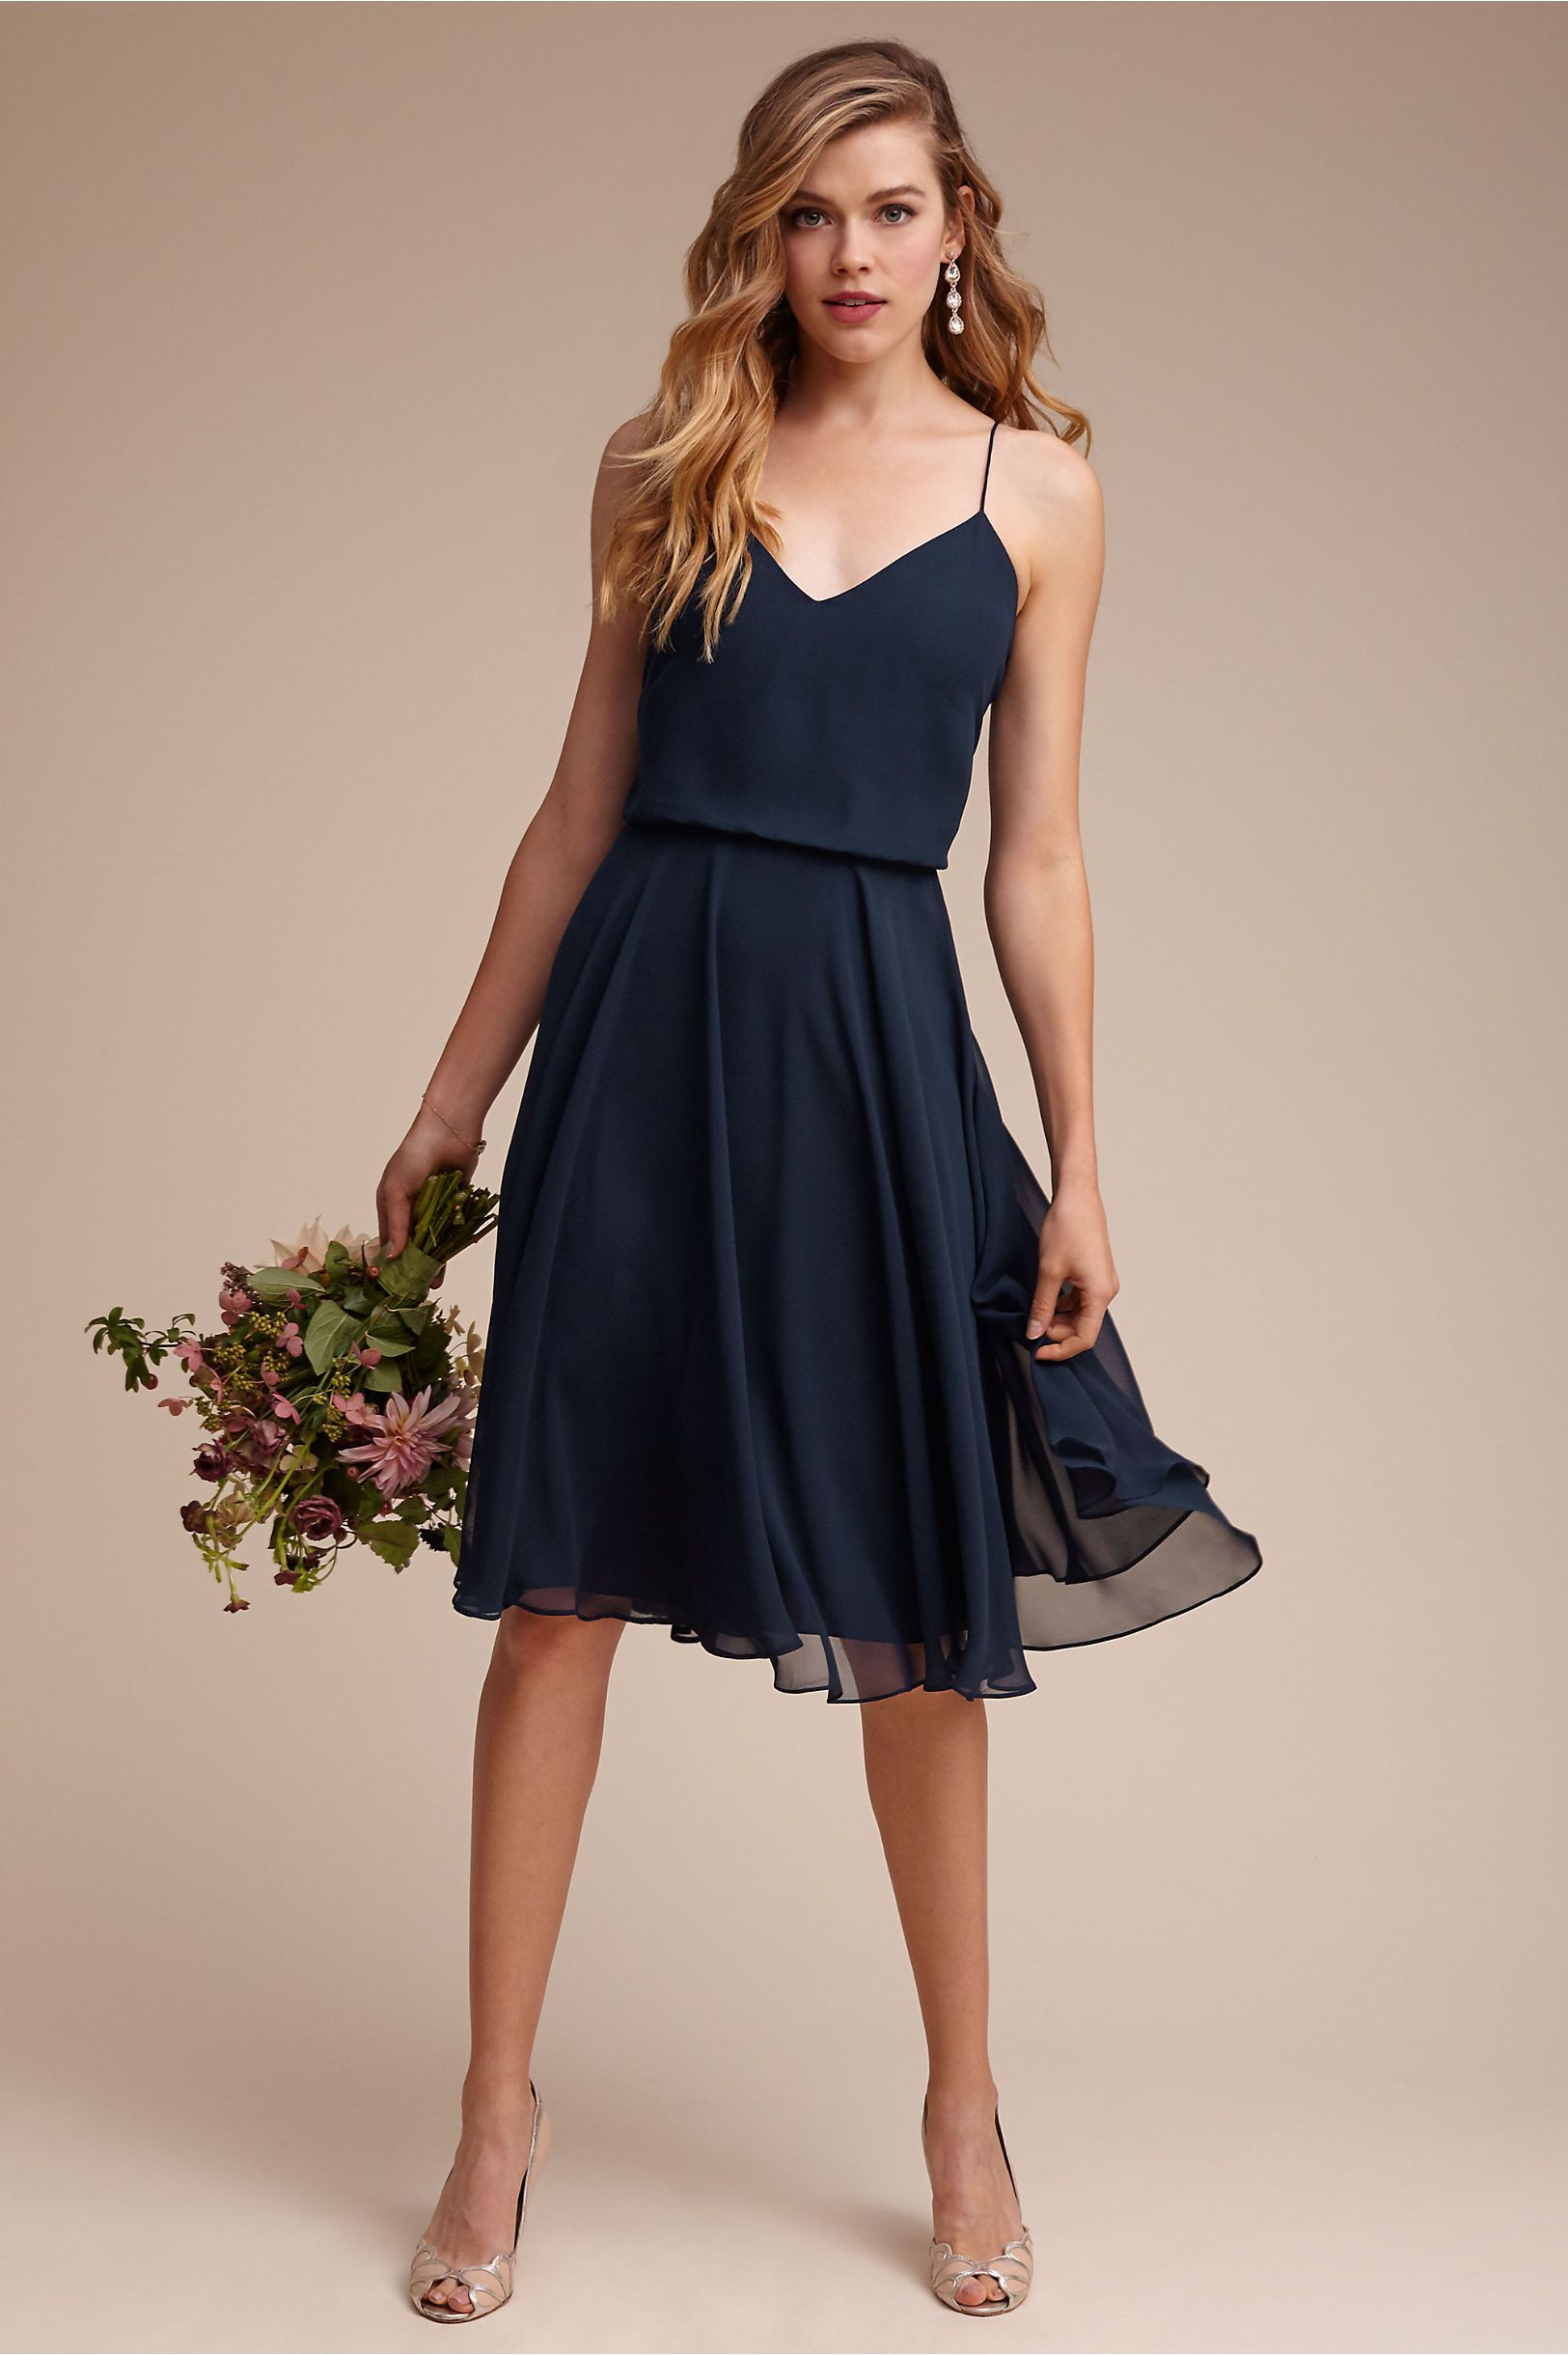 BHLDN s Jenny Yoo Sienna Dress in Navy 28b4823ac8b3